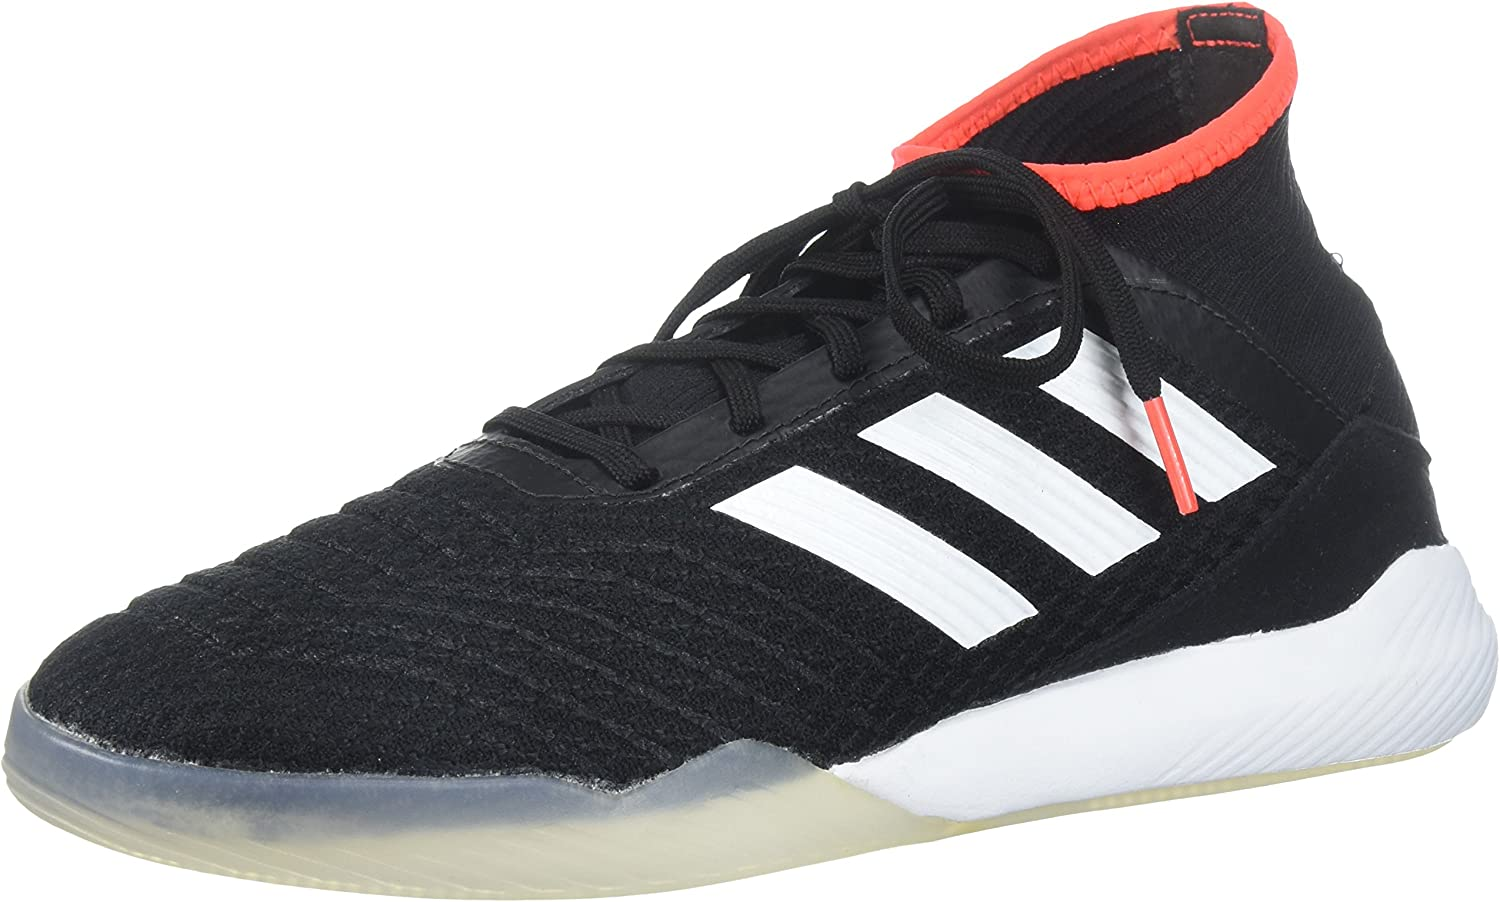 Adidas Performance UnisexKids Ace Tango 18.3 TR Soccer shoes